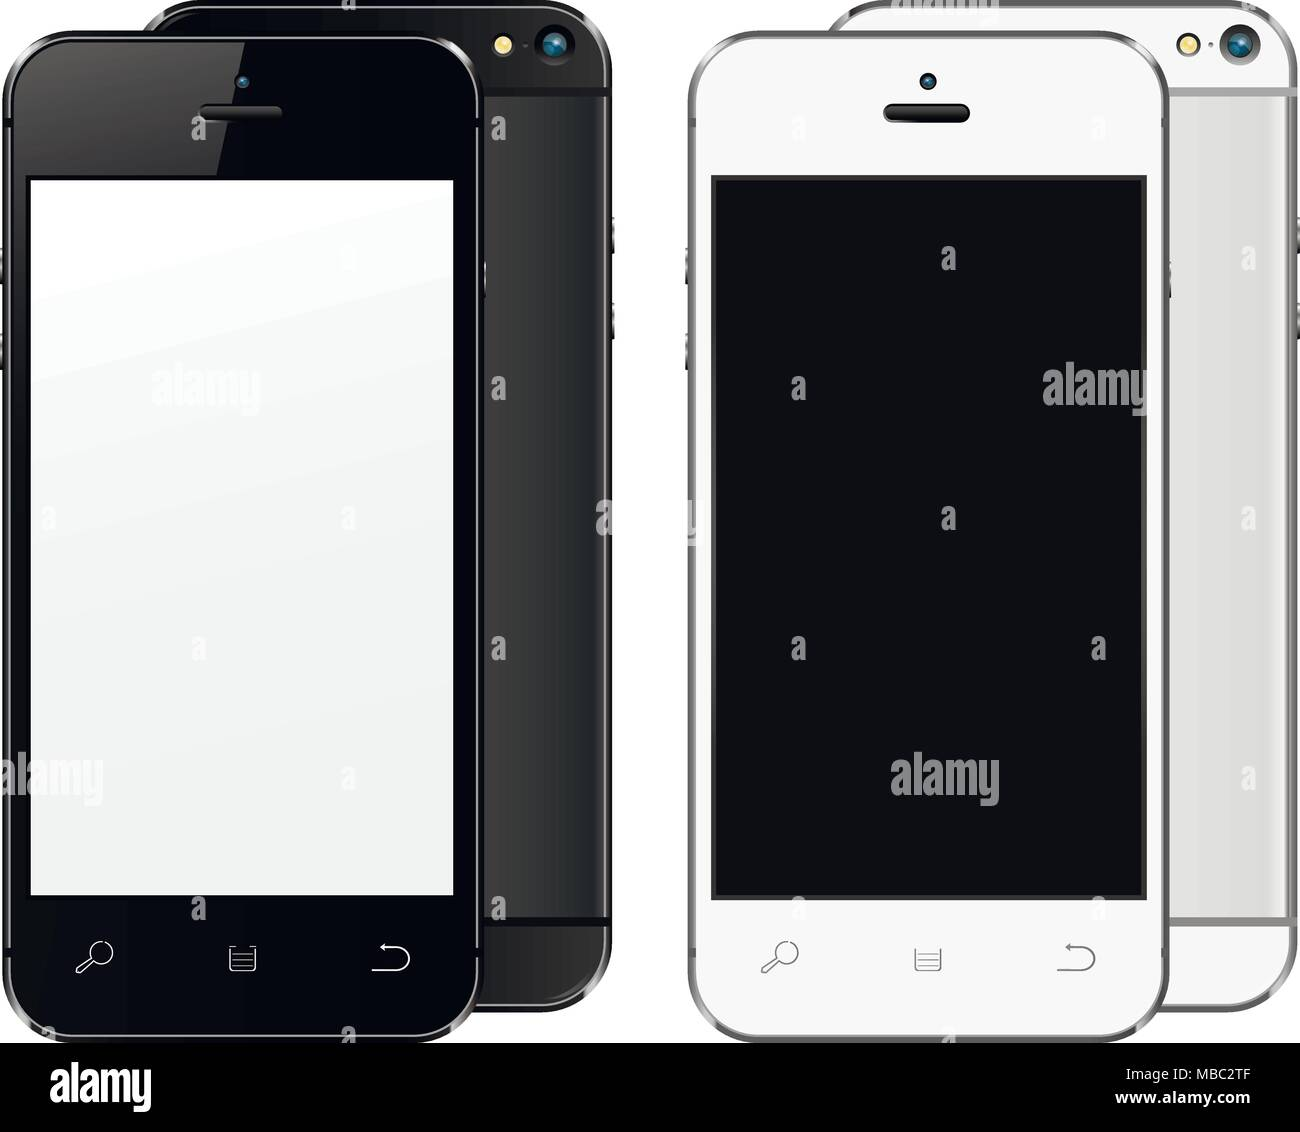 New realistic mobile phones mockups front and back with blank screen isolated. Vector illustration. Stock Vector